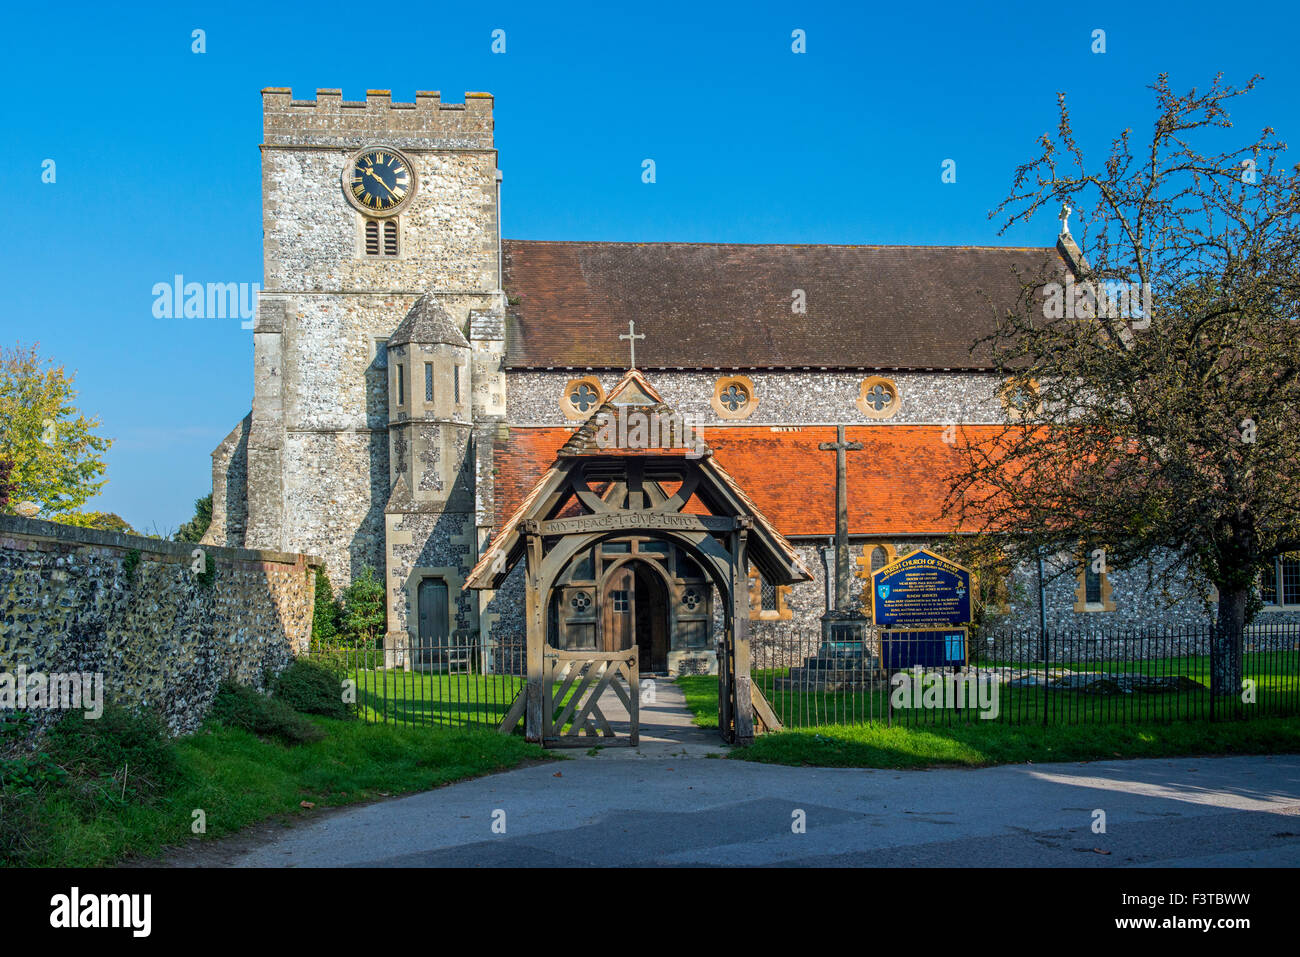 Parish Church of St. Mary in the village of Streatley, west Berkshire, England - Stock Image